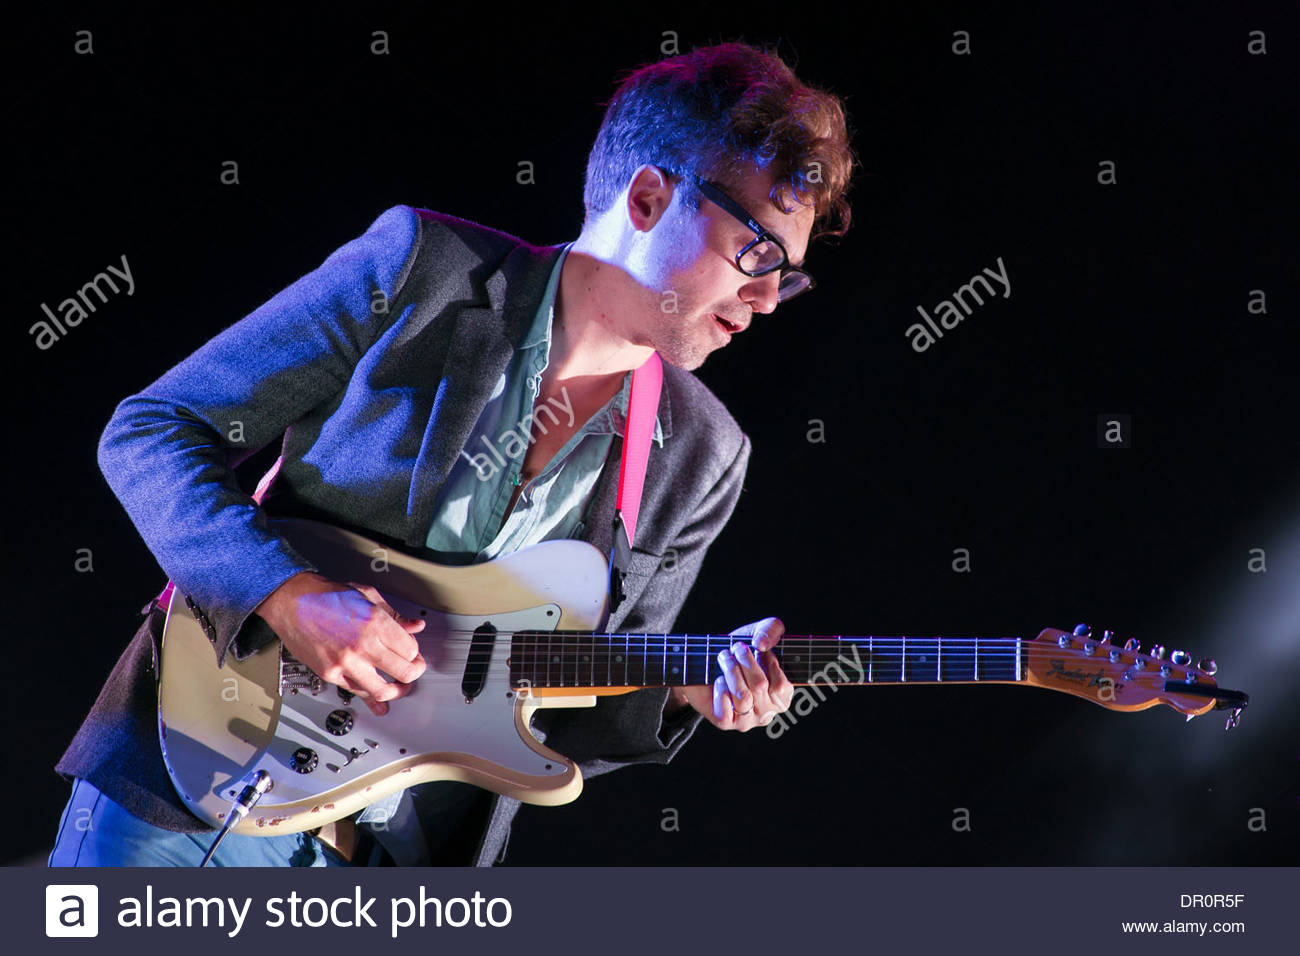 French band Phoenix performing live - Stock Image